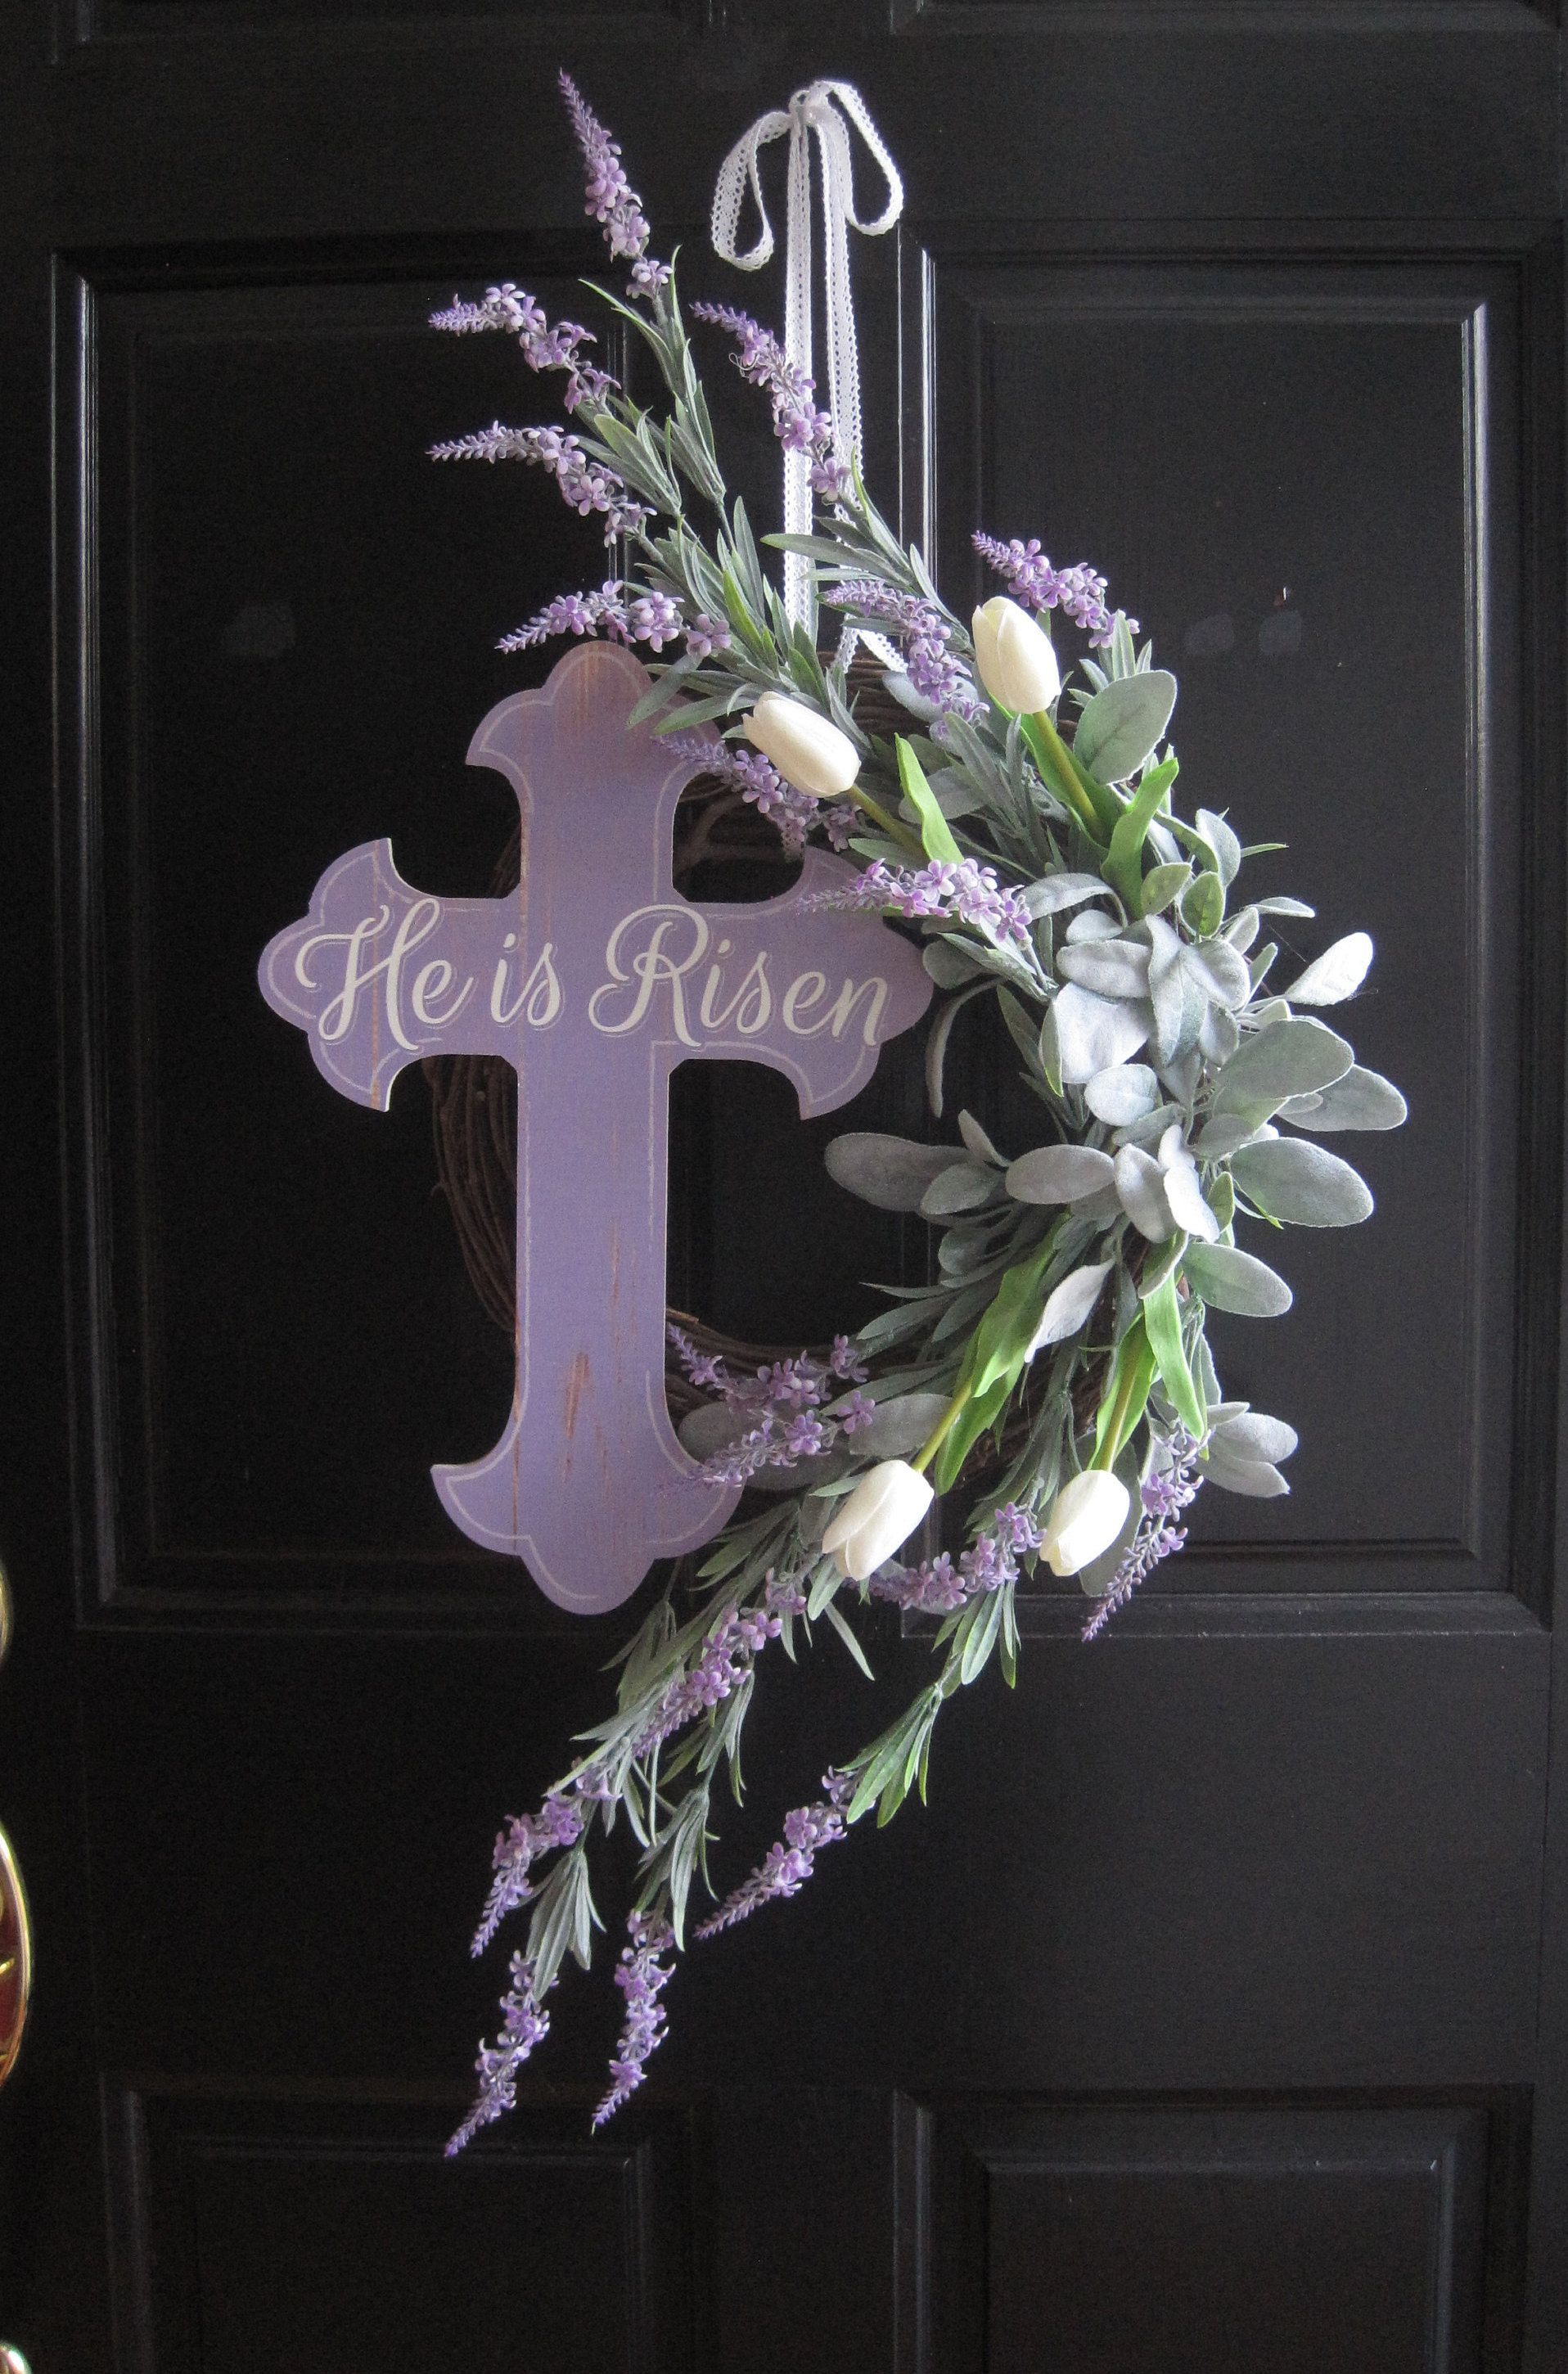 Easter Wreath For Front Door Easter Cross Wreath Tulip Wreath Lavender White Easter Decoration Wall Decor Door Decor Gift Cross Wreath Easter Wreaths Wreaths For Front Door